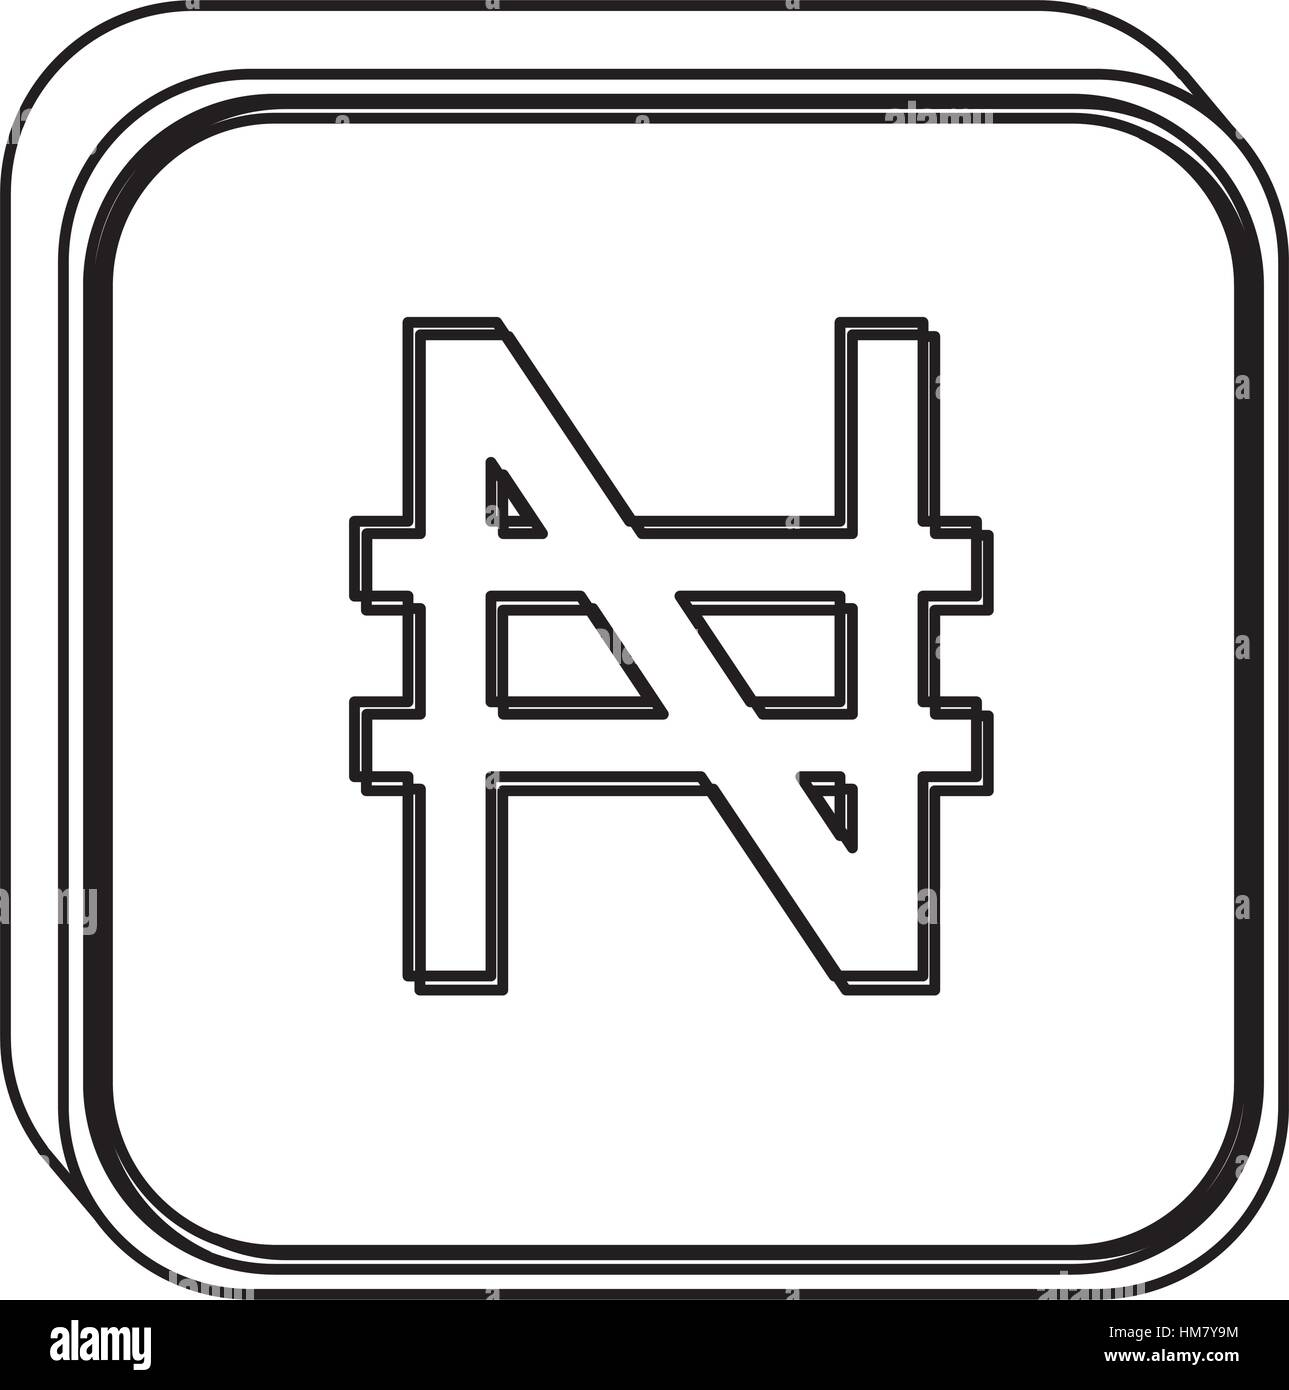 Ngn currency symbol choice image symbol and sign ideas monochrome square contour with currency symbol of nigerian naira monochrome square contour with currency symbol of biocorpaavc